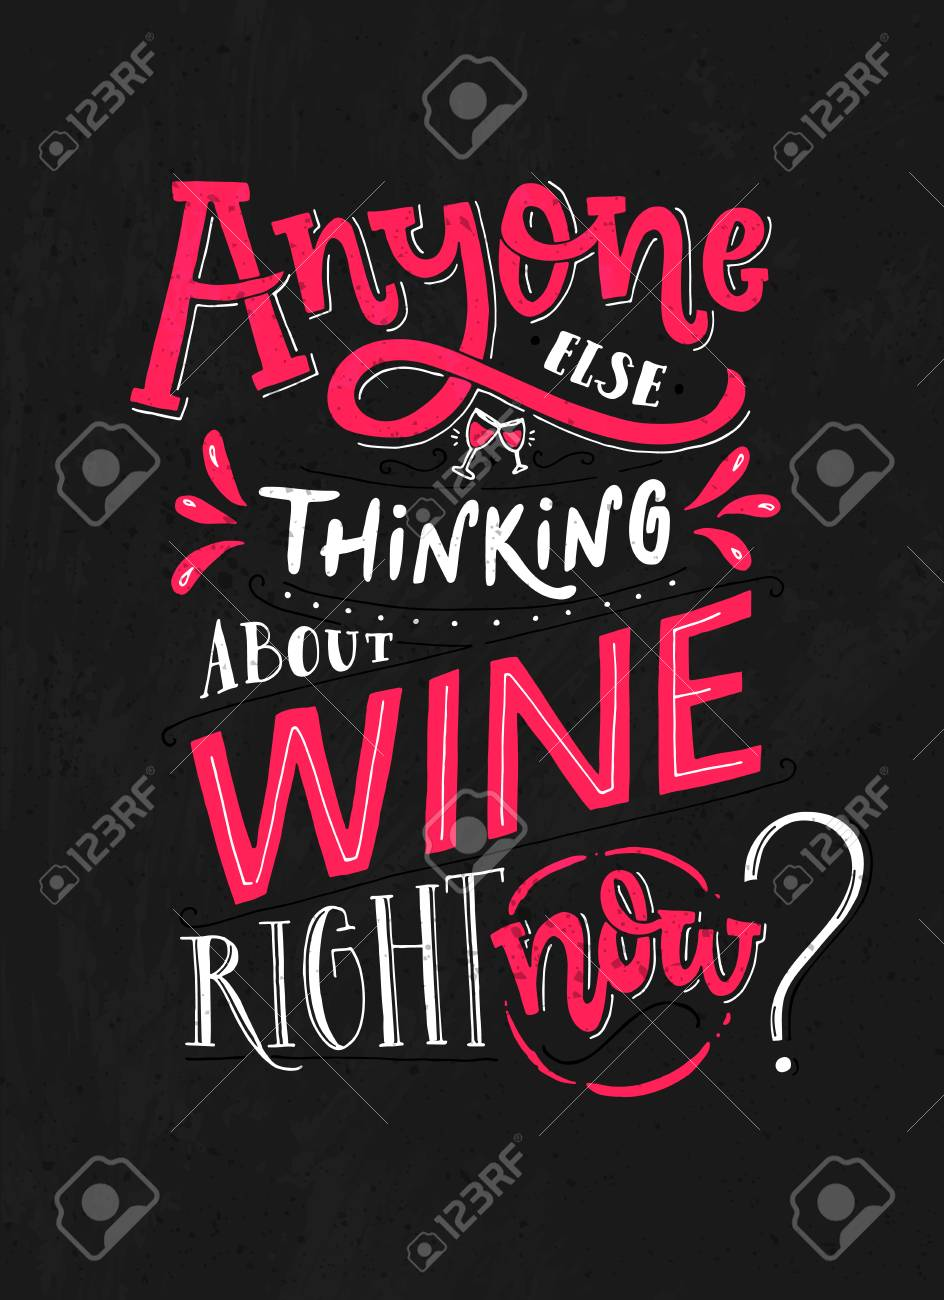 Abyone Else Thinking About Wine Right Now Funny Typoghaphy Poster